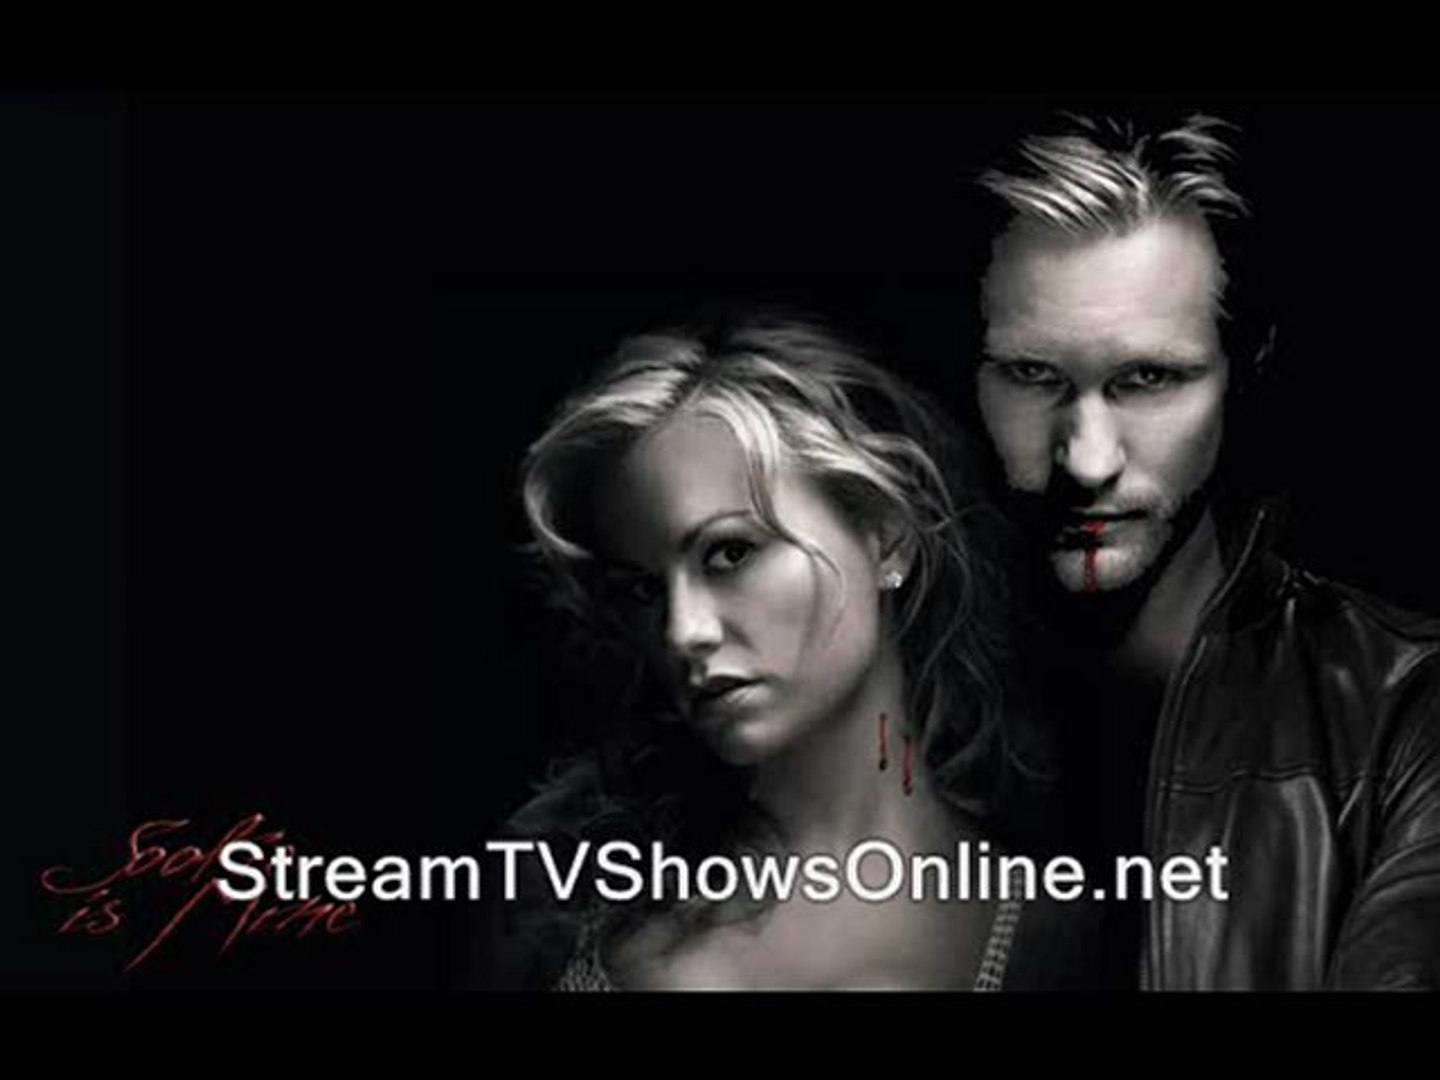 True Blood season 4 episode 1 She's Not There episodes to watch streaming